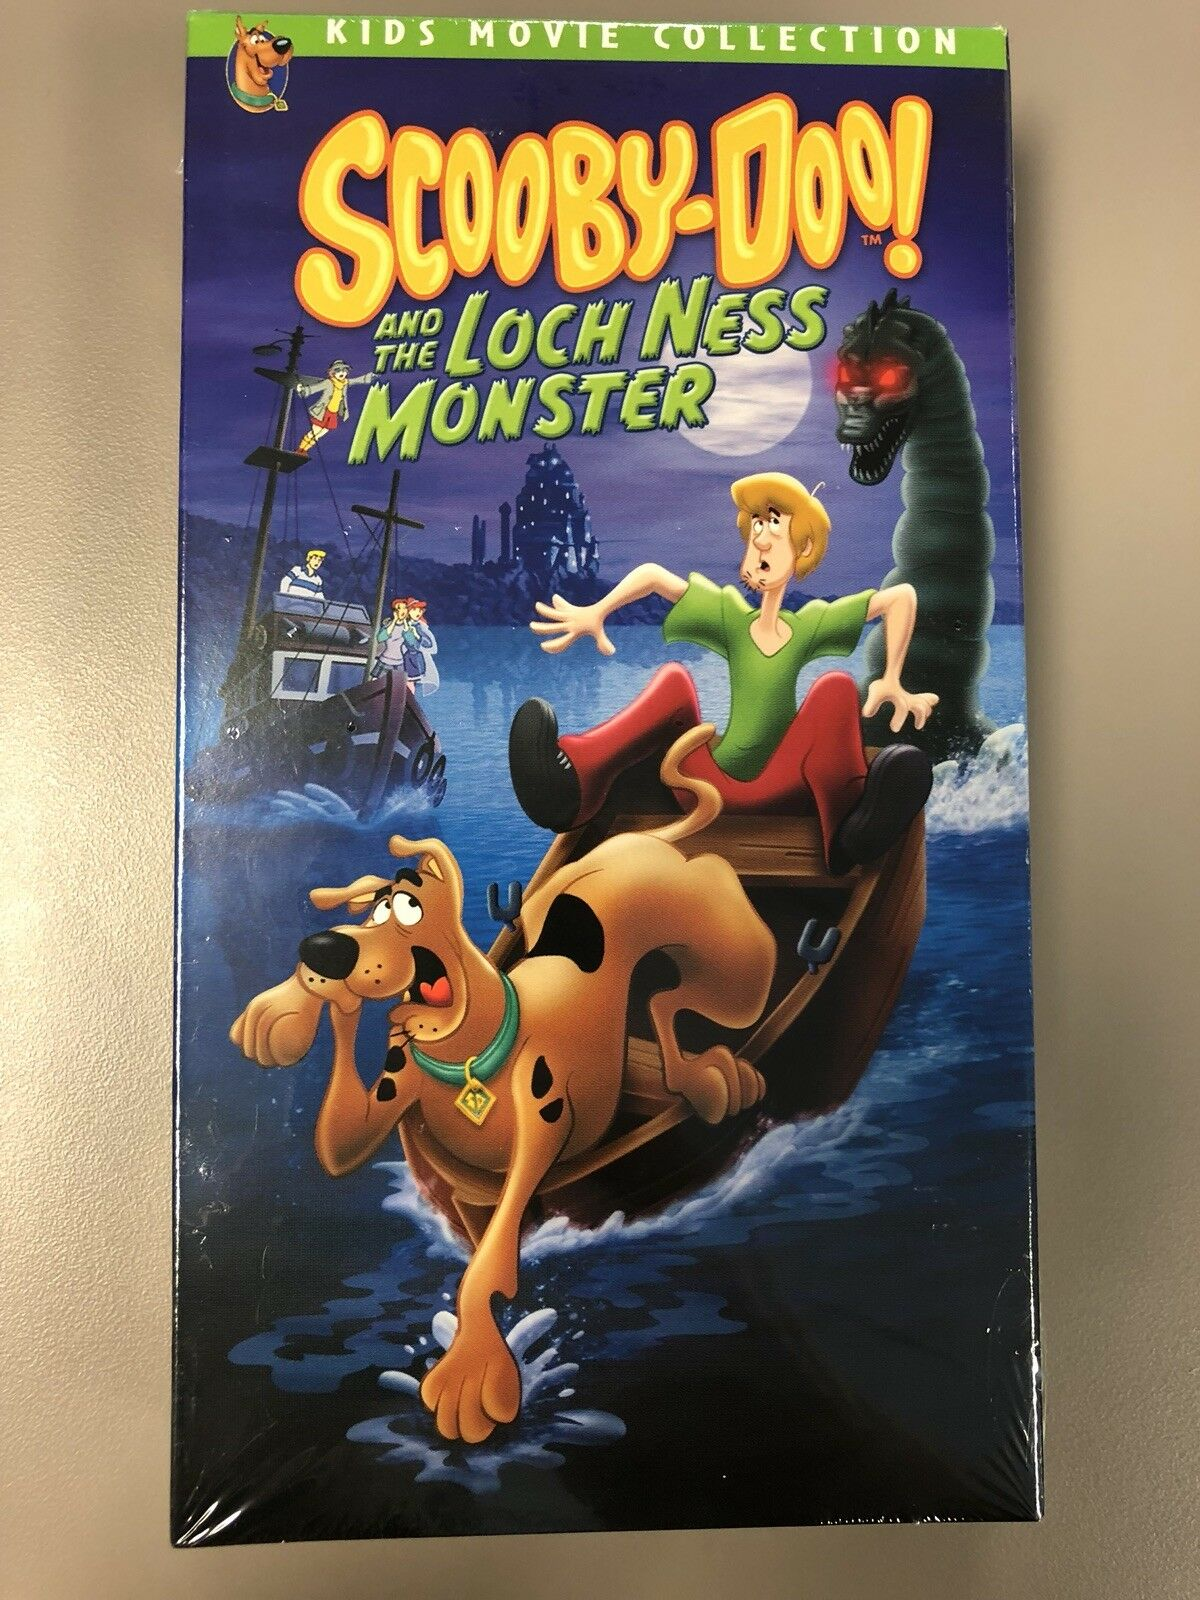 Scooby-Doo and the Loch Ness Monster (2004 DVD & VHS)